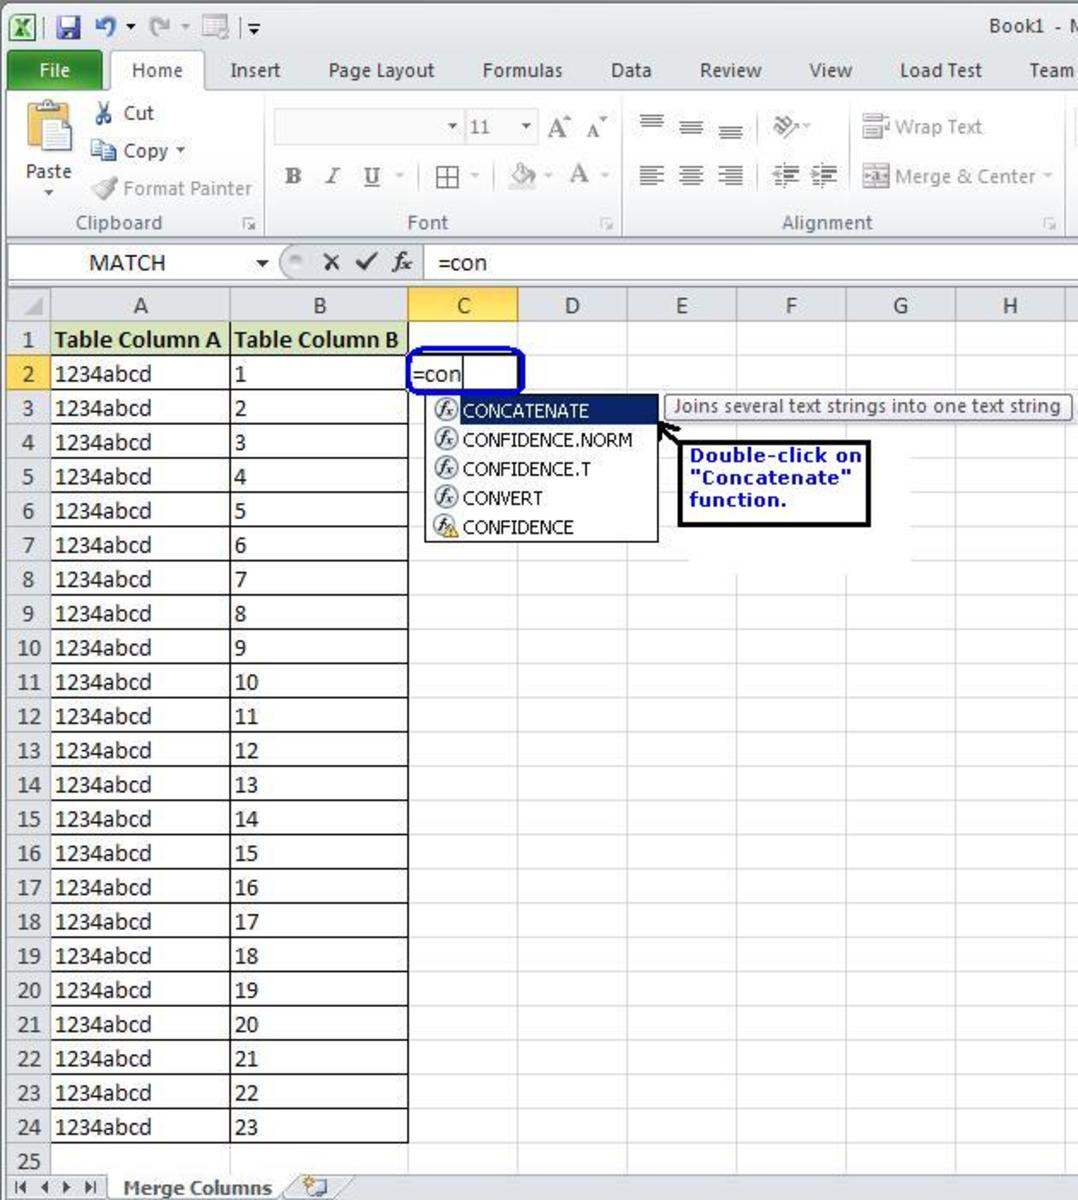 tutorial-ms-excel-how-to-merge-columns-in-a-microsoft-excel-worksheet